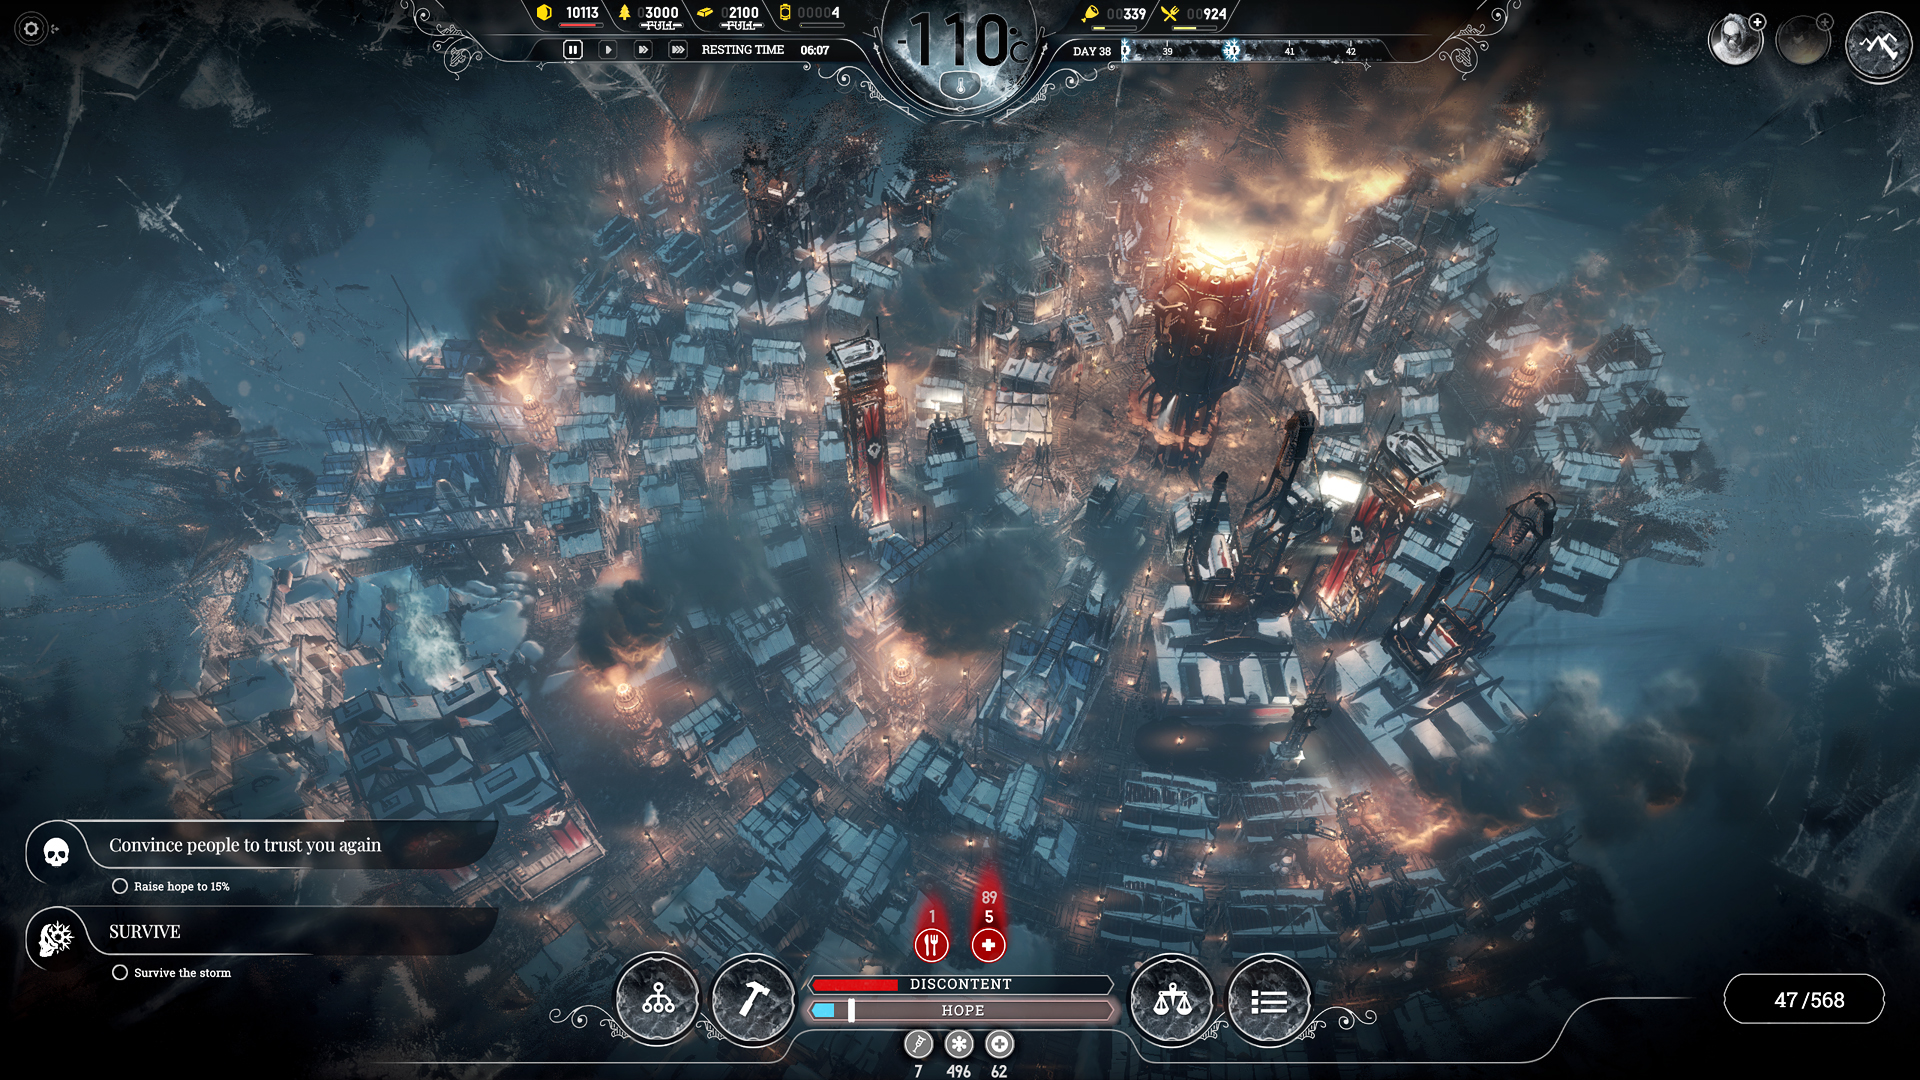 A screenshot showing a snowy city from Frostpunk.